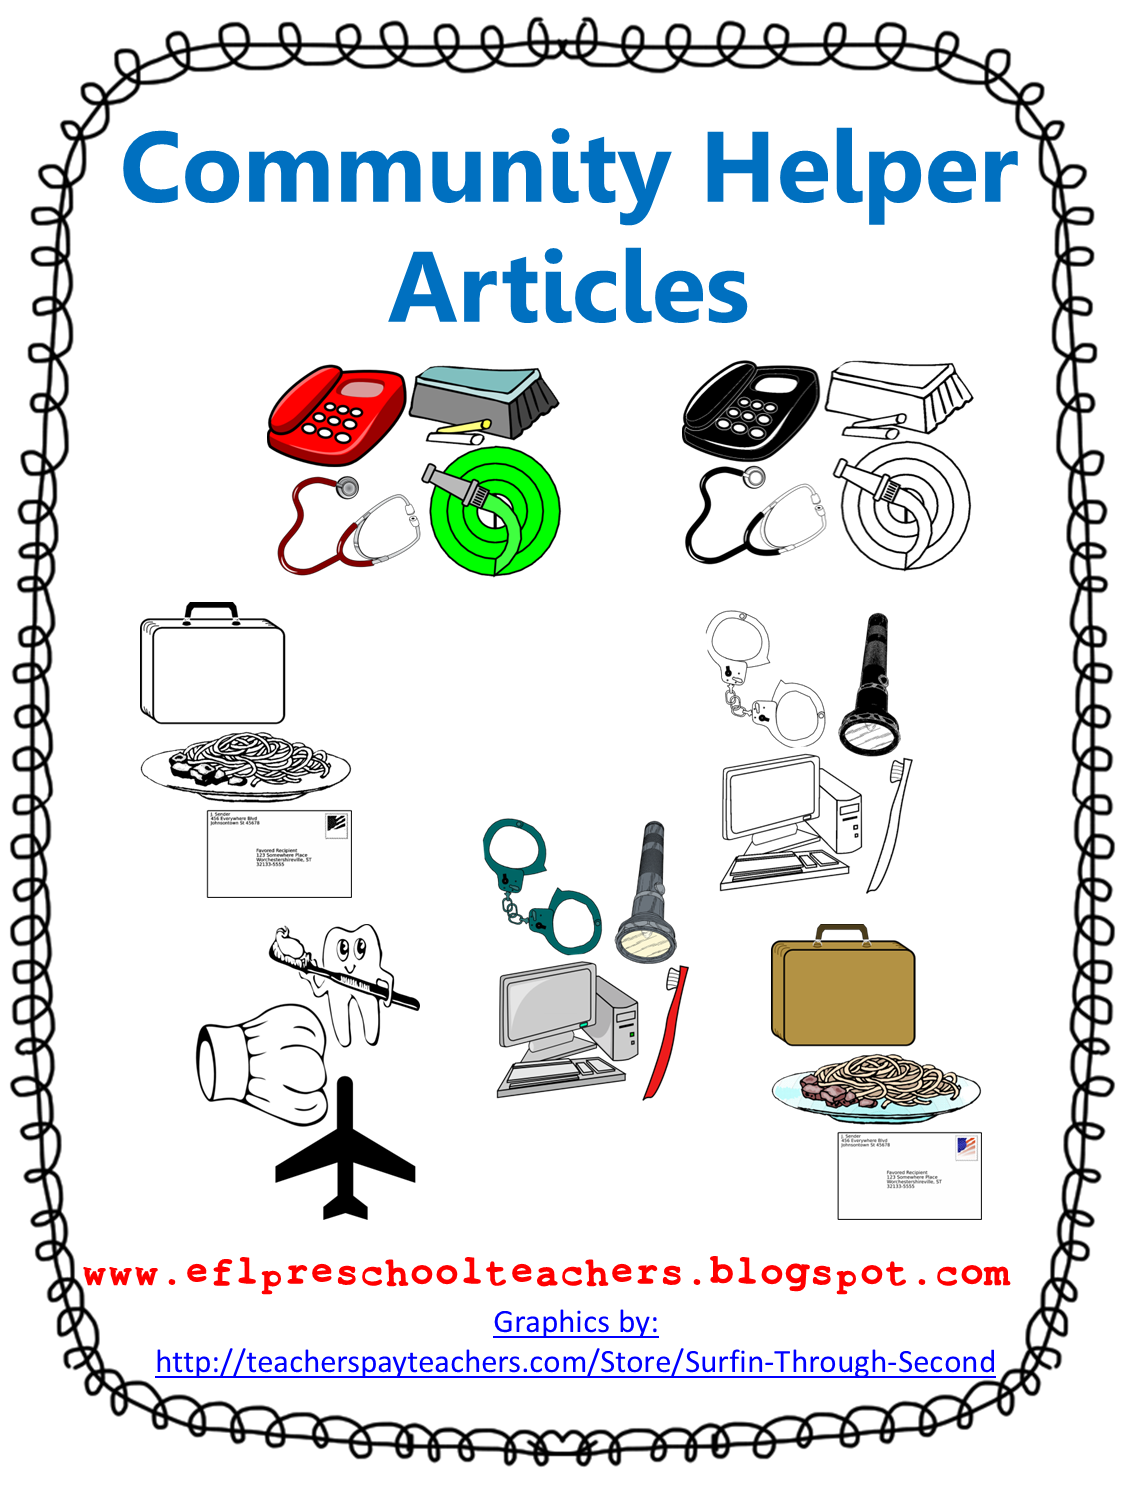 Esl Efl Preschool Teachers Community Helpers Resources